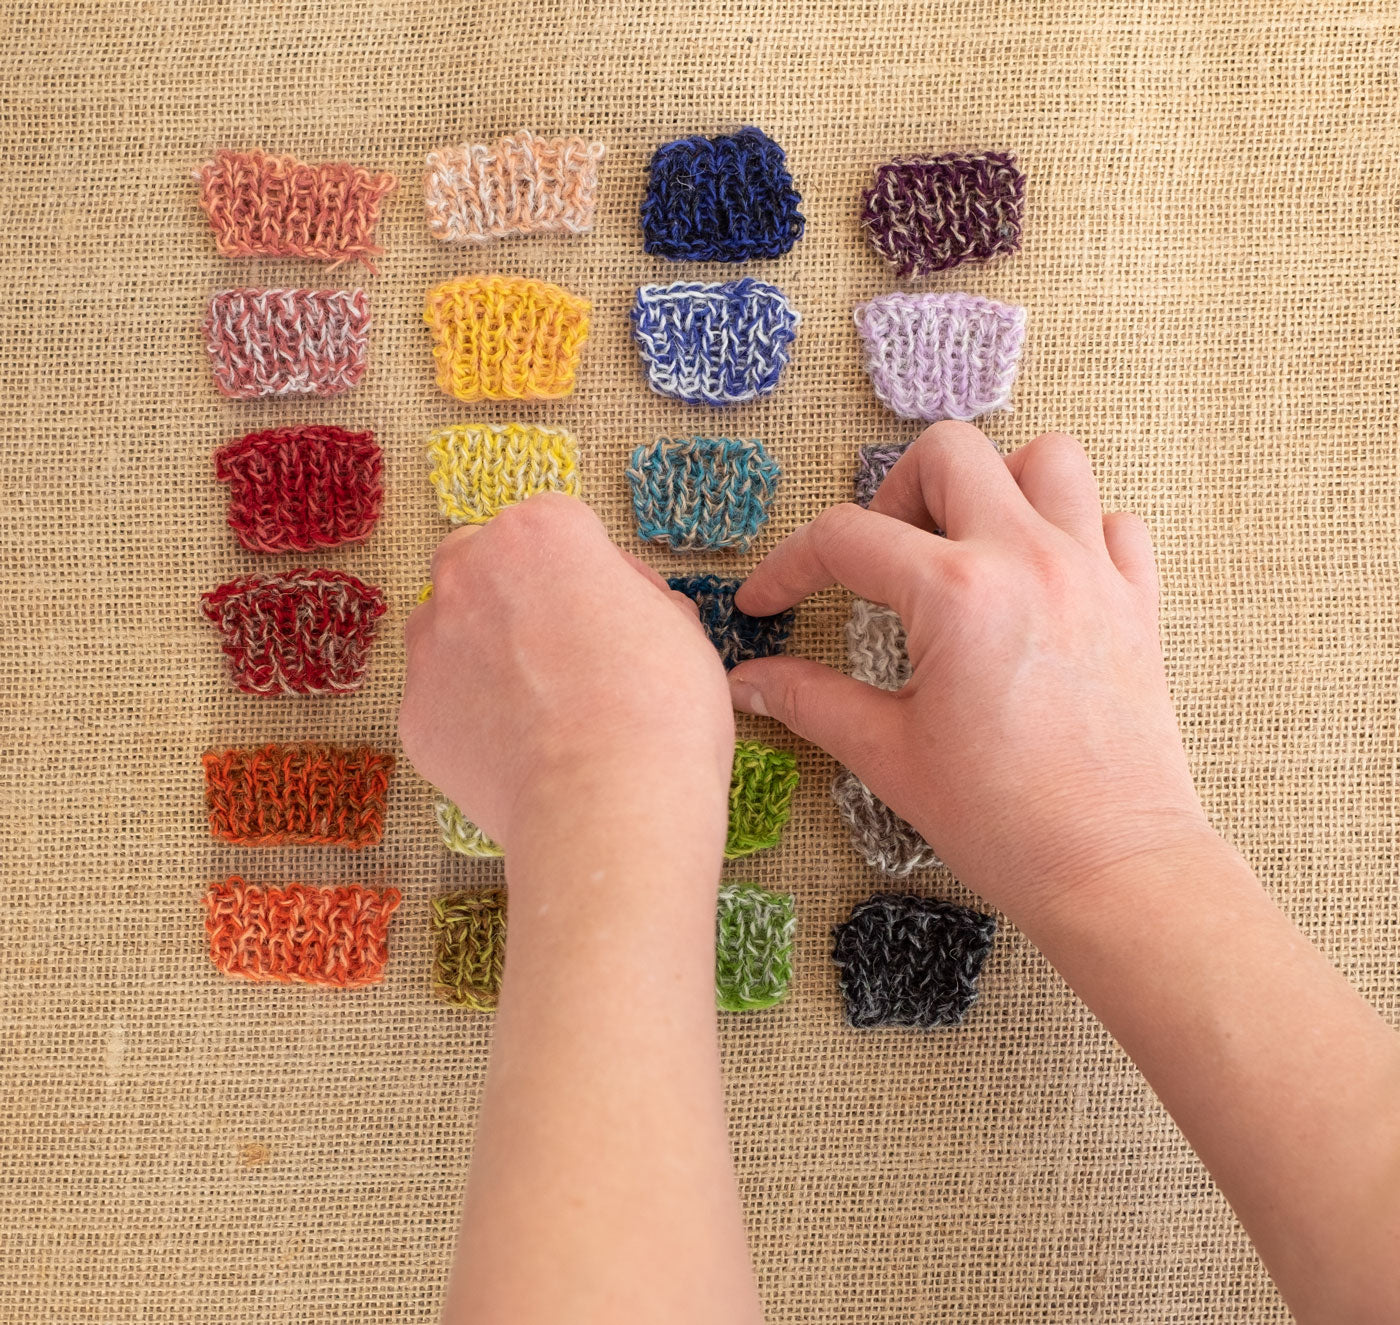 A grid of dozens of tiny swatches, testing many combinations of pairs of colors marled together. Two hands reach into the frame to straighten the swatches.